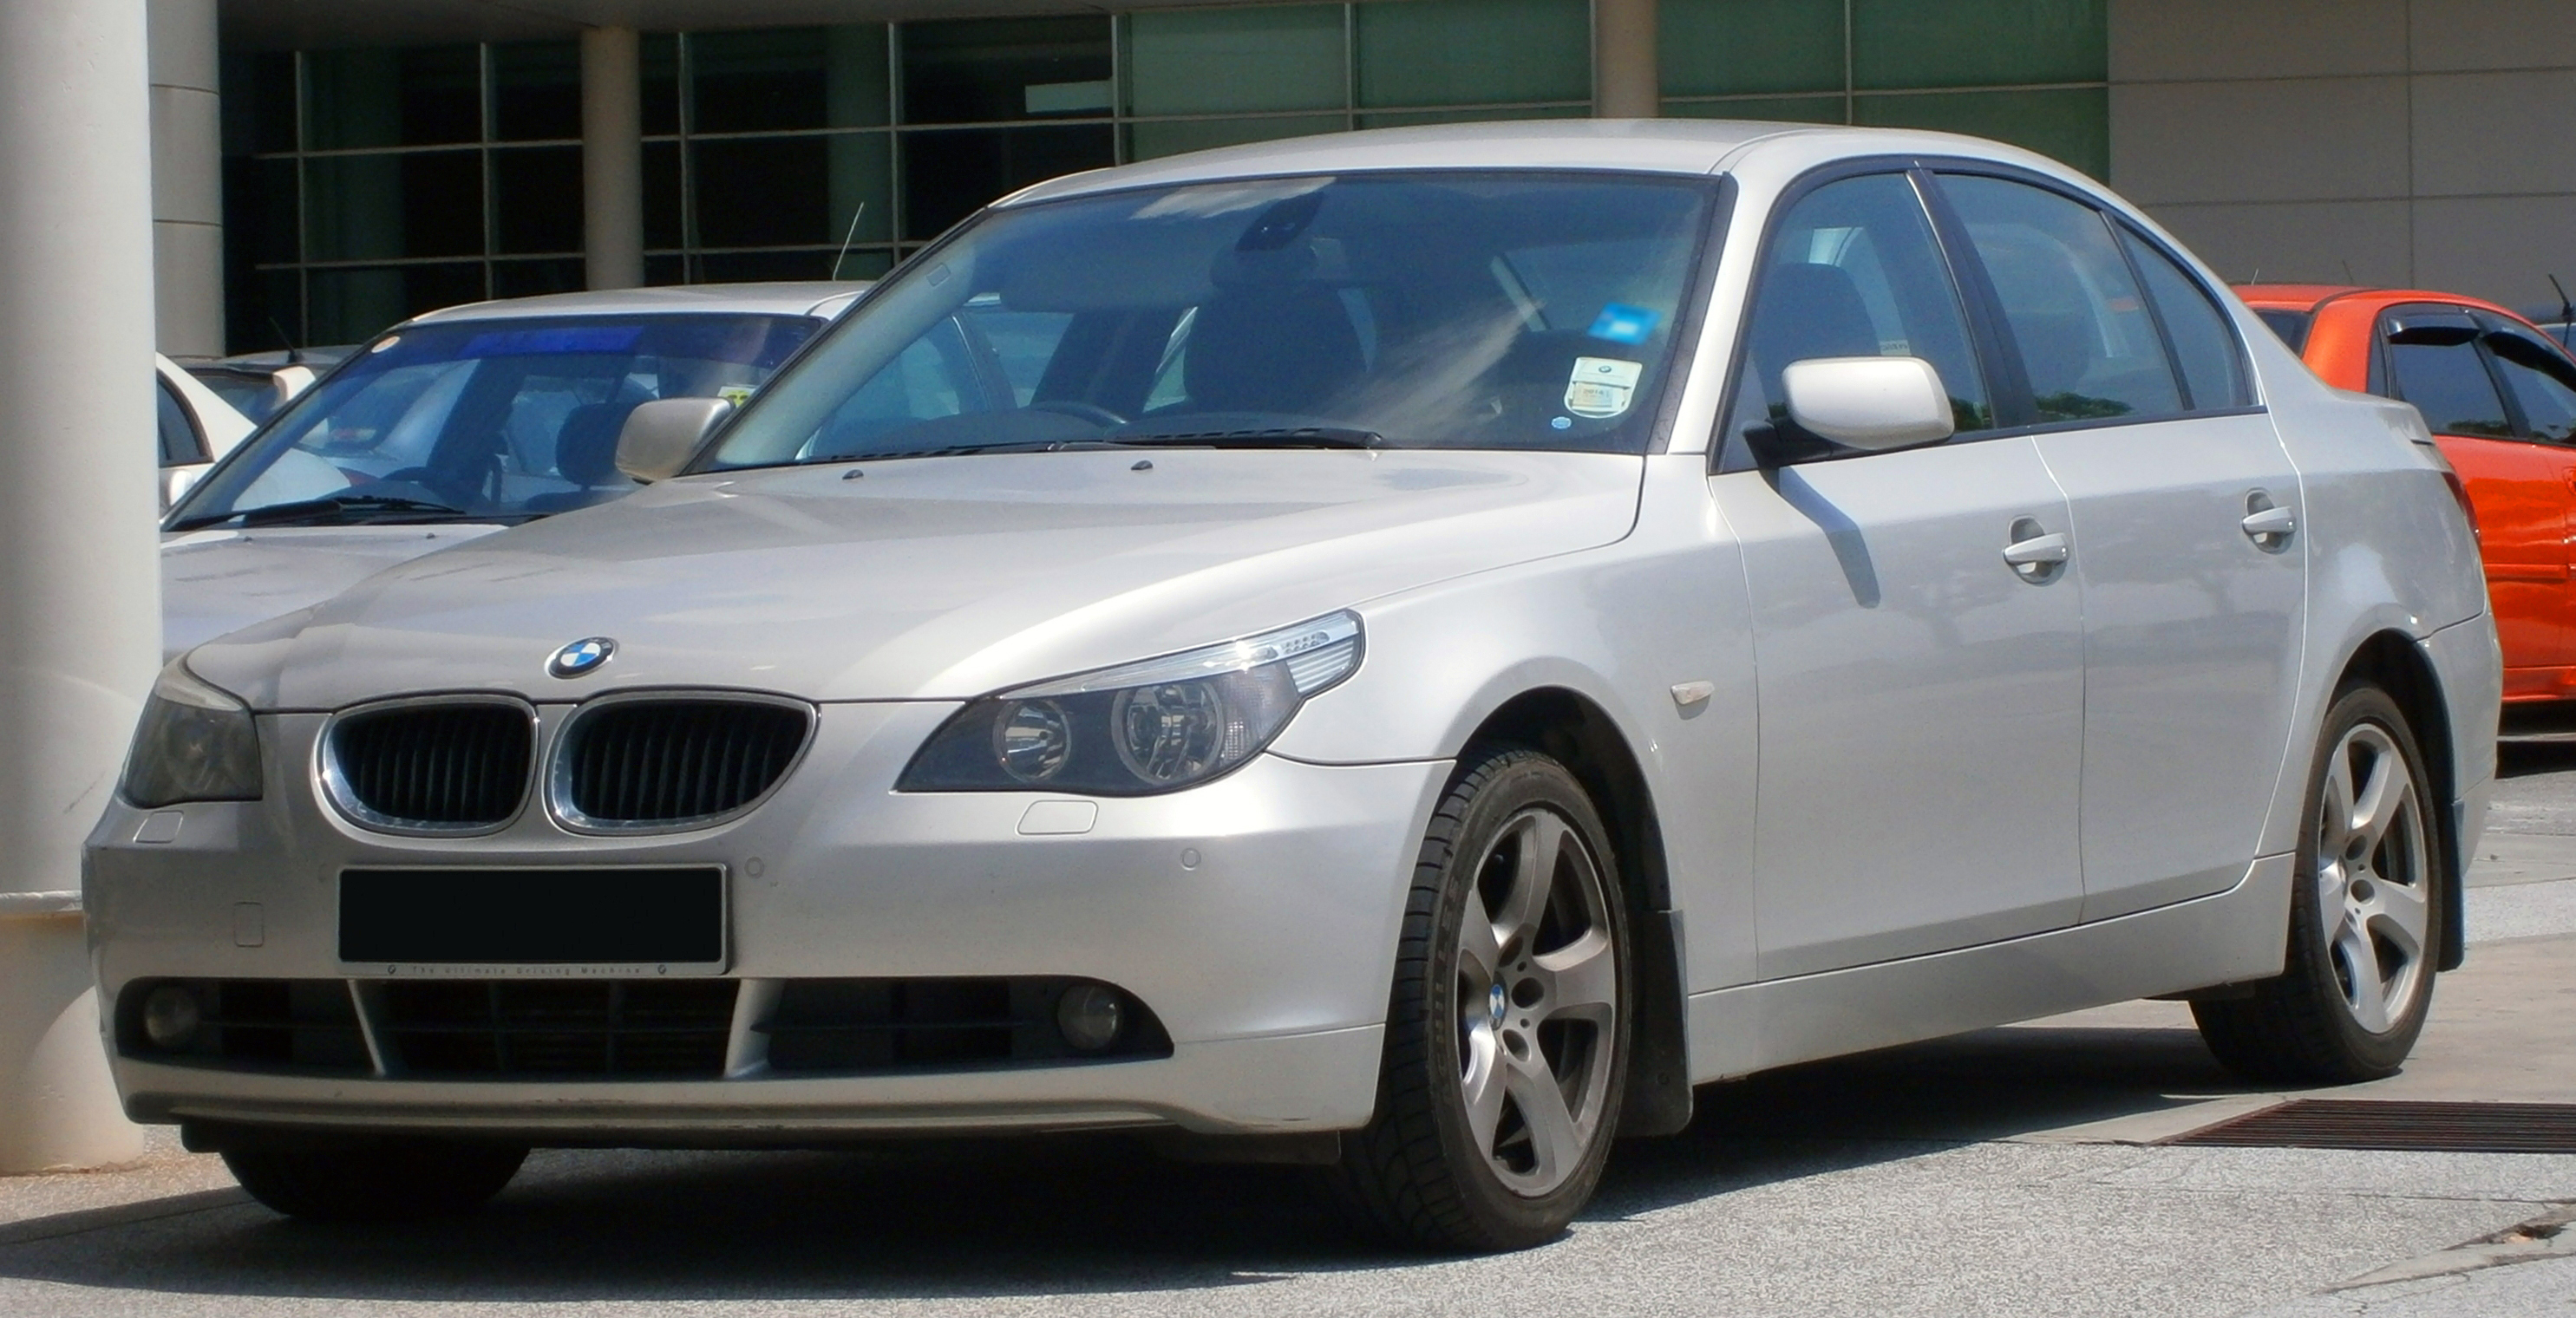 file 2004 2007 bmw 525d e60 5 series saloon in cyberjaya malaysia 01 jpg wikipedia. Black Bedroom Furniture Sets. Home Design Ideas